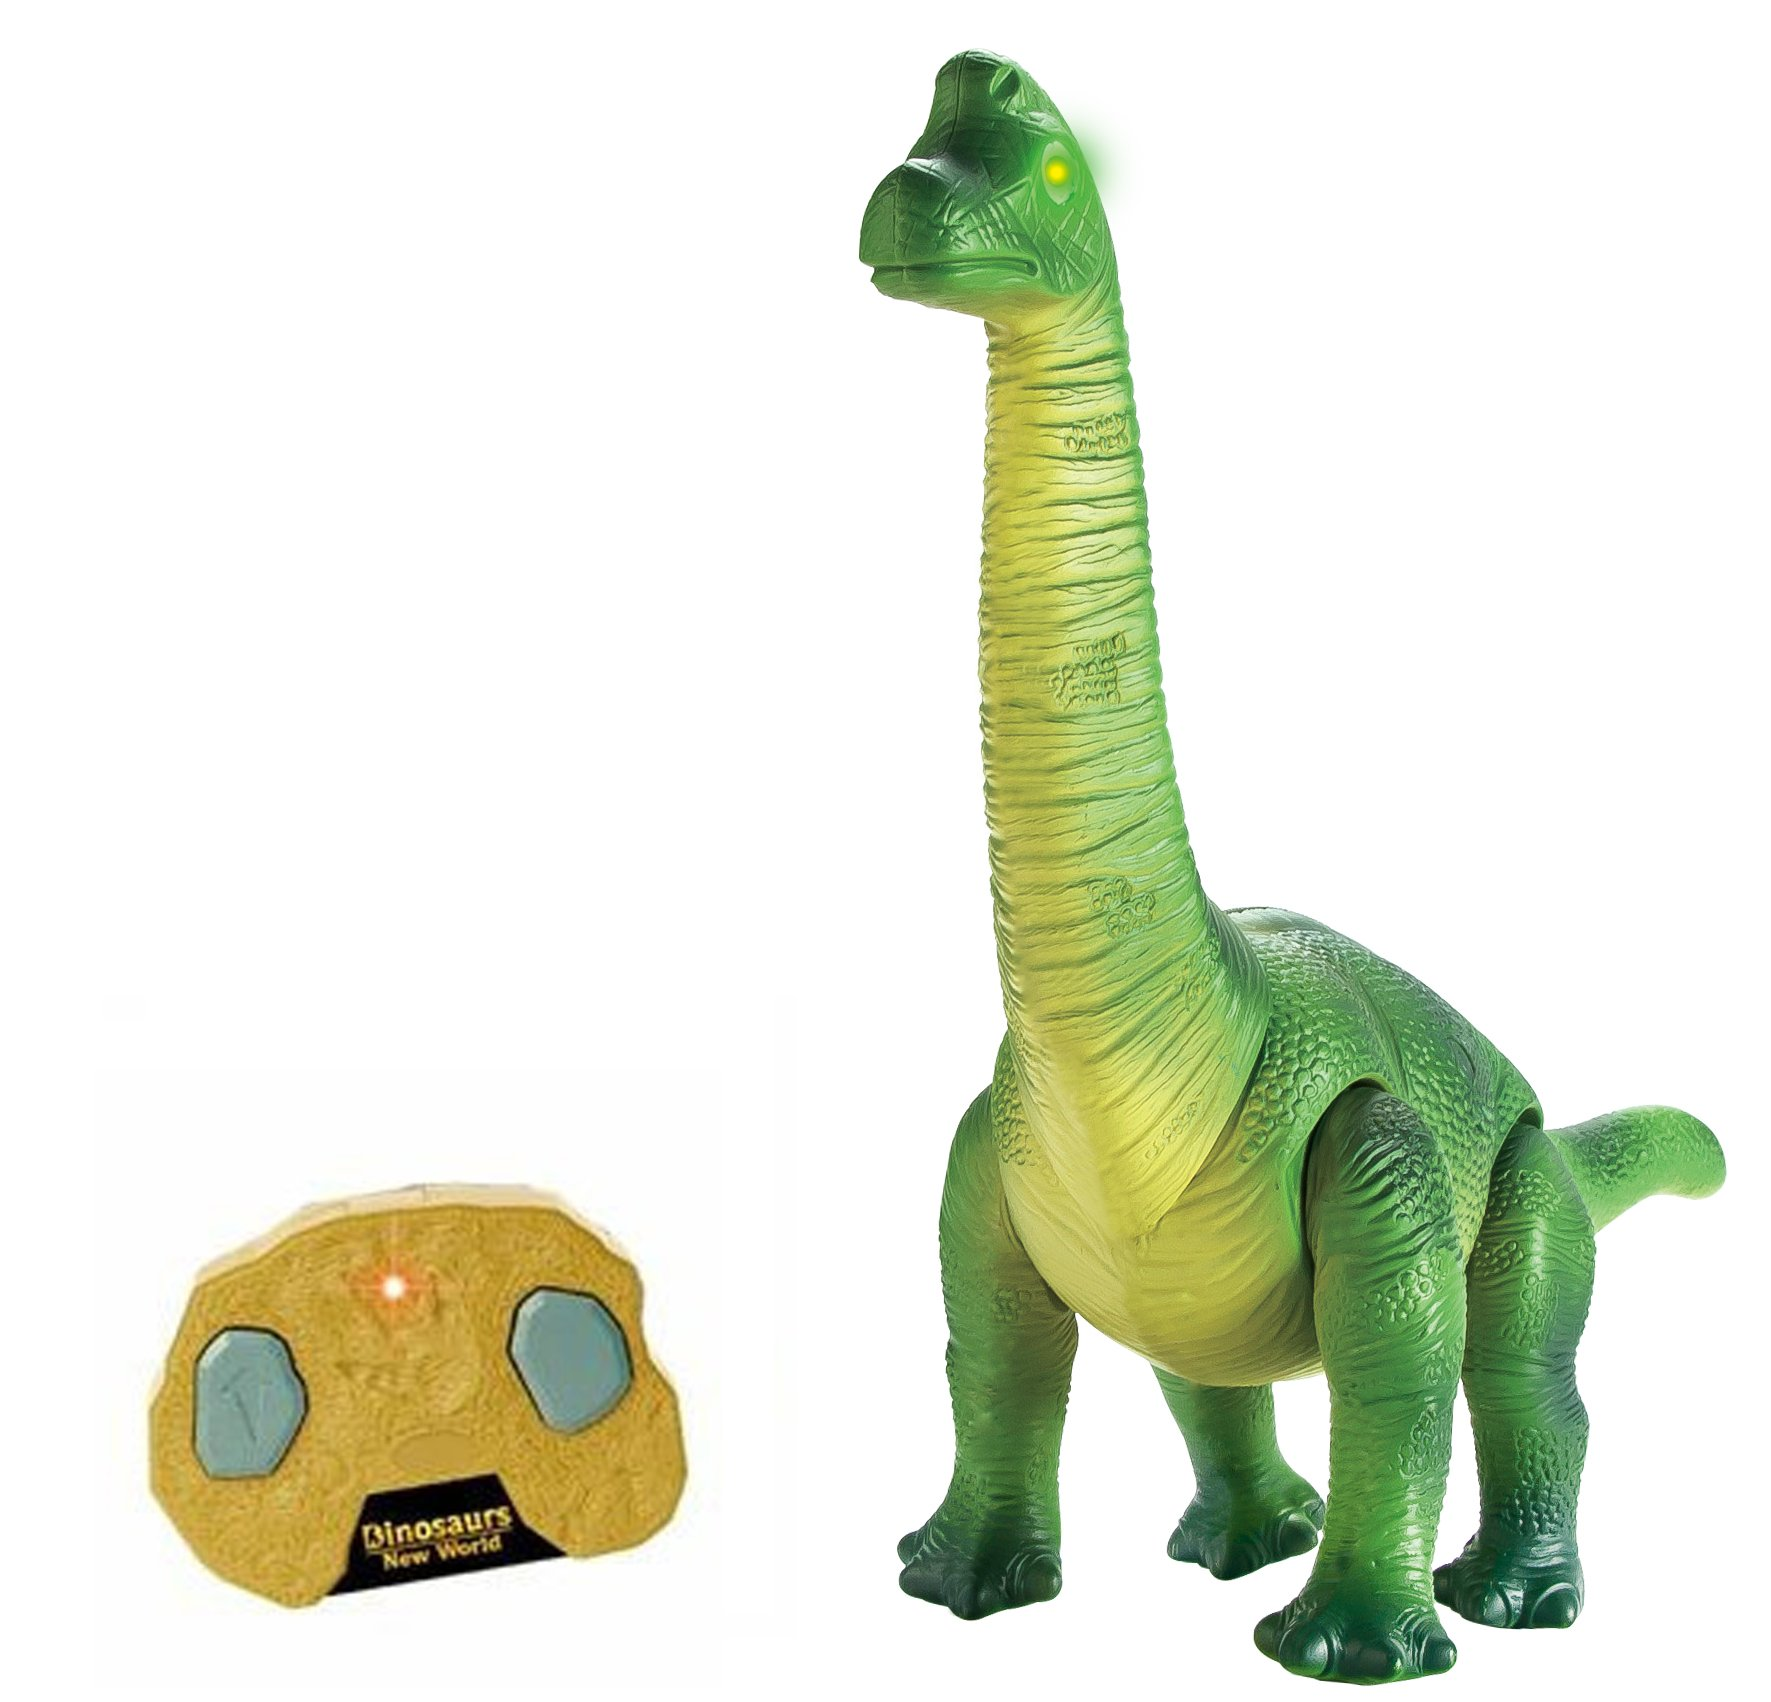 Liberty Imports Dino Planet Remote Control R/C Walking Dinosaur Toy with Shaking Head, Light Up Eyes and Sounds (Brachiosaurus)